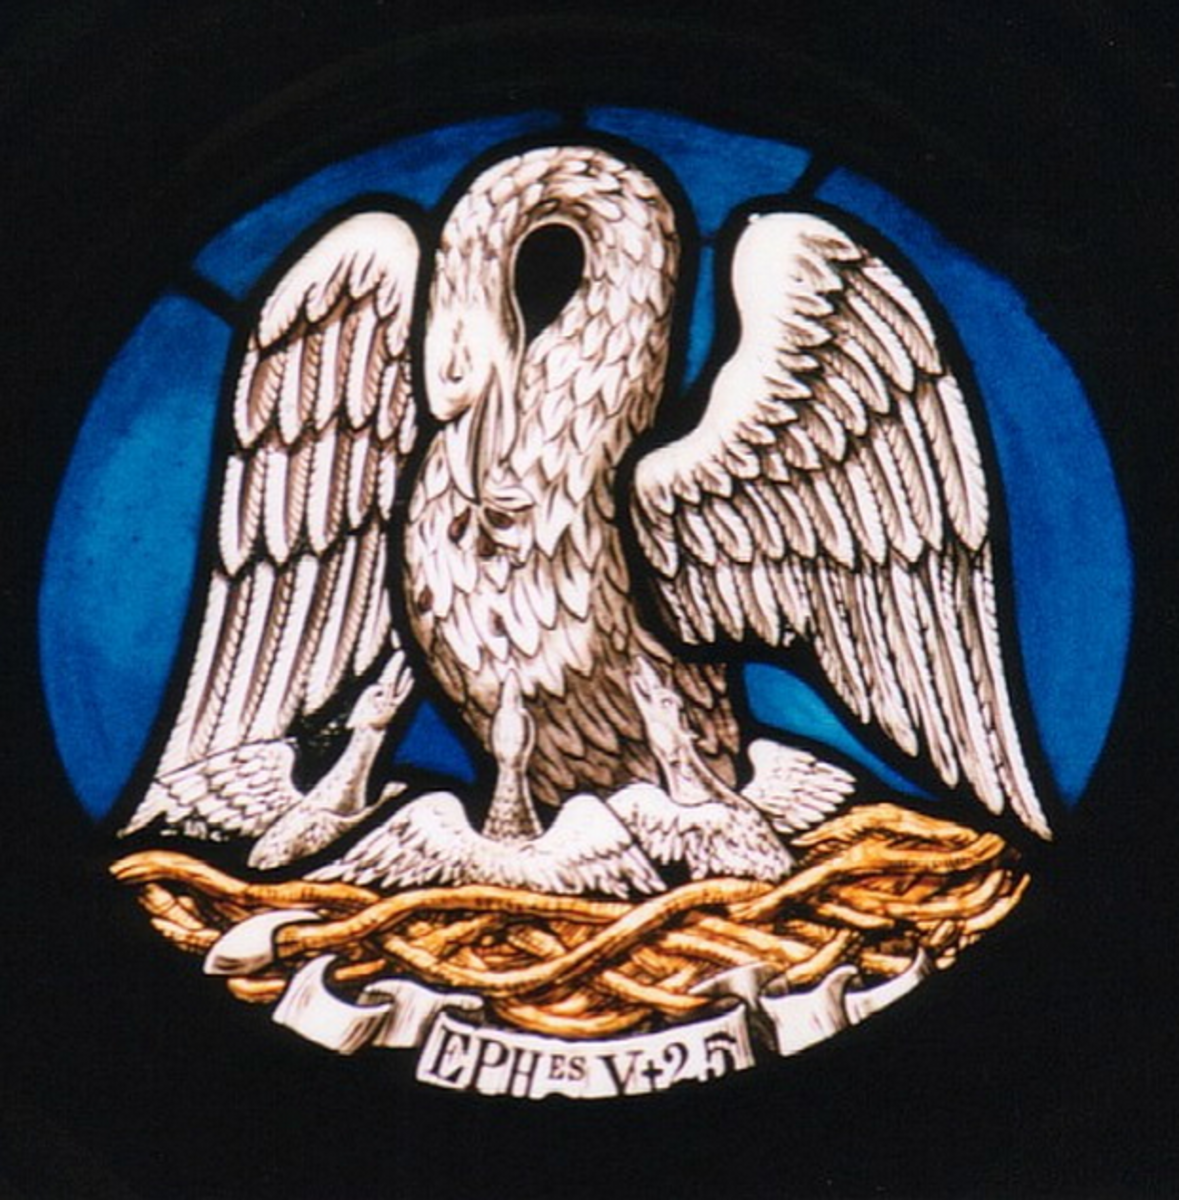 The medieval symbol of the pelican piercing its breast to nurse its young was a biologically inaccurate but powerful object lesson.